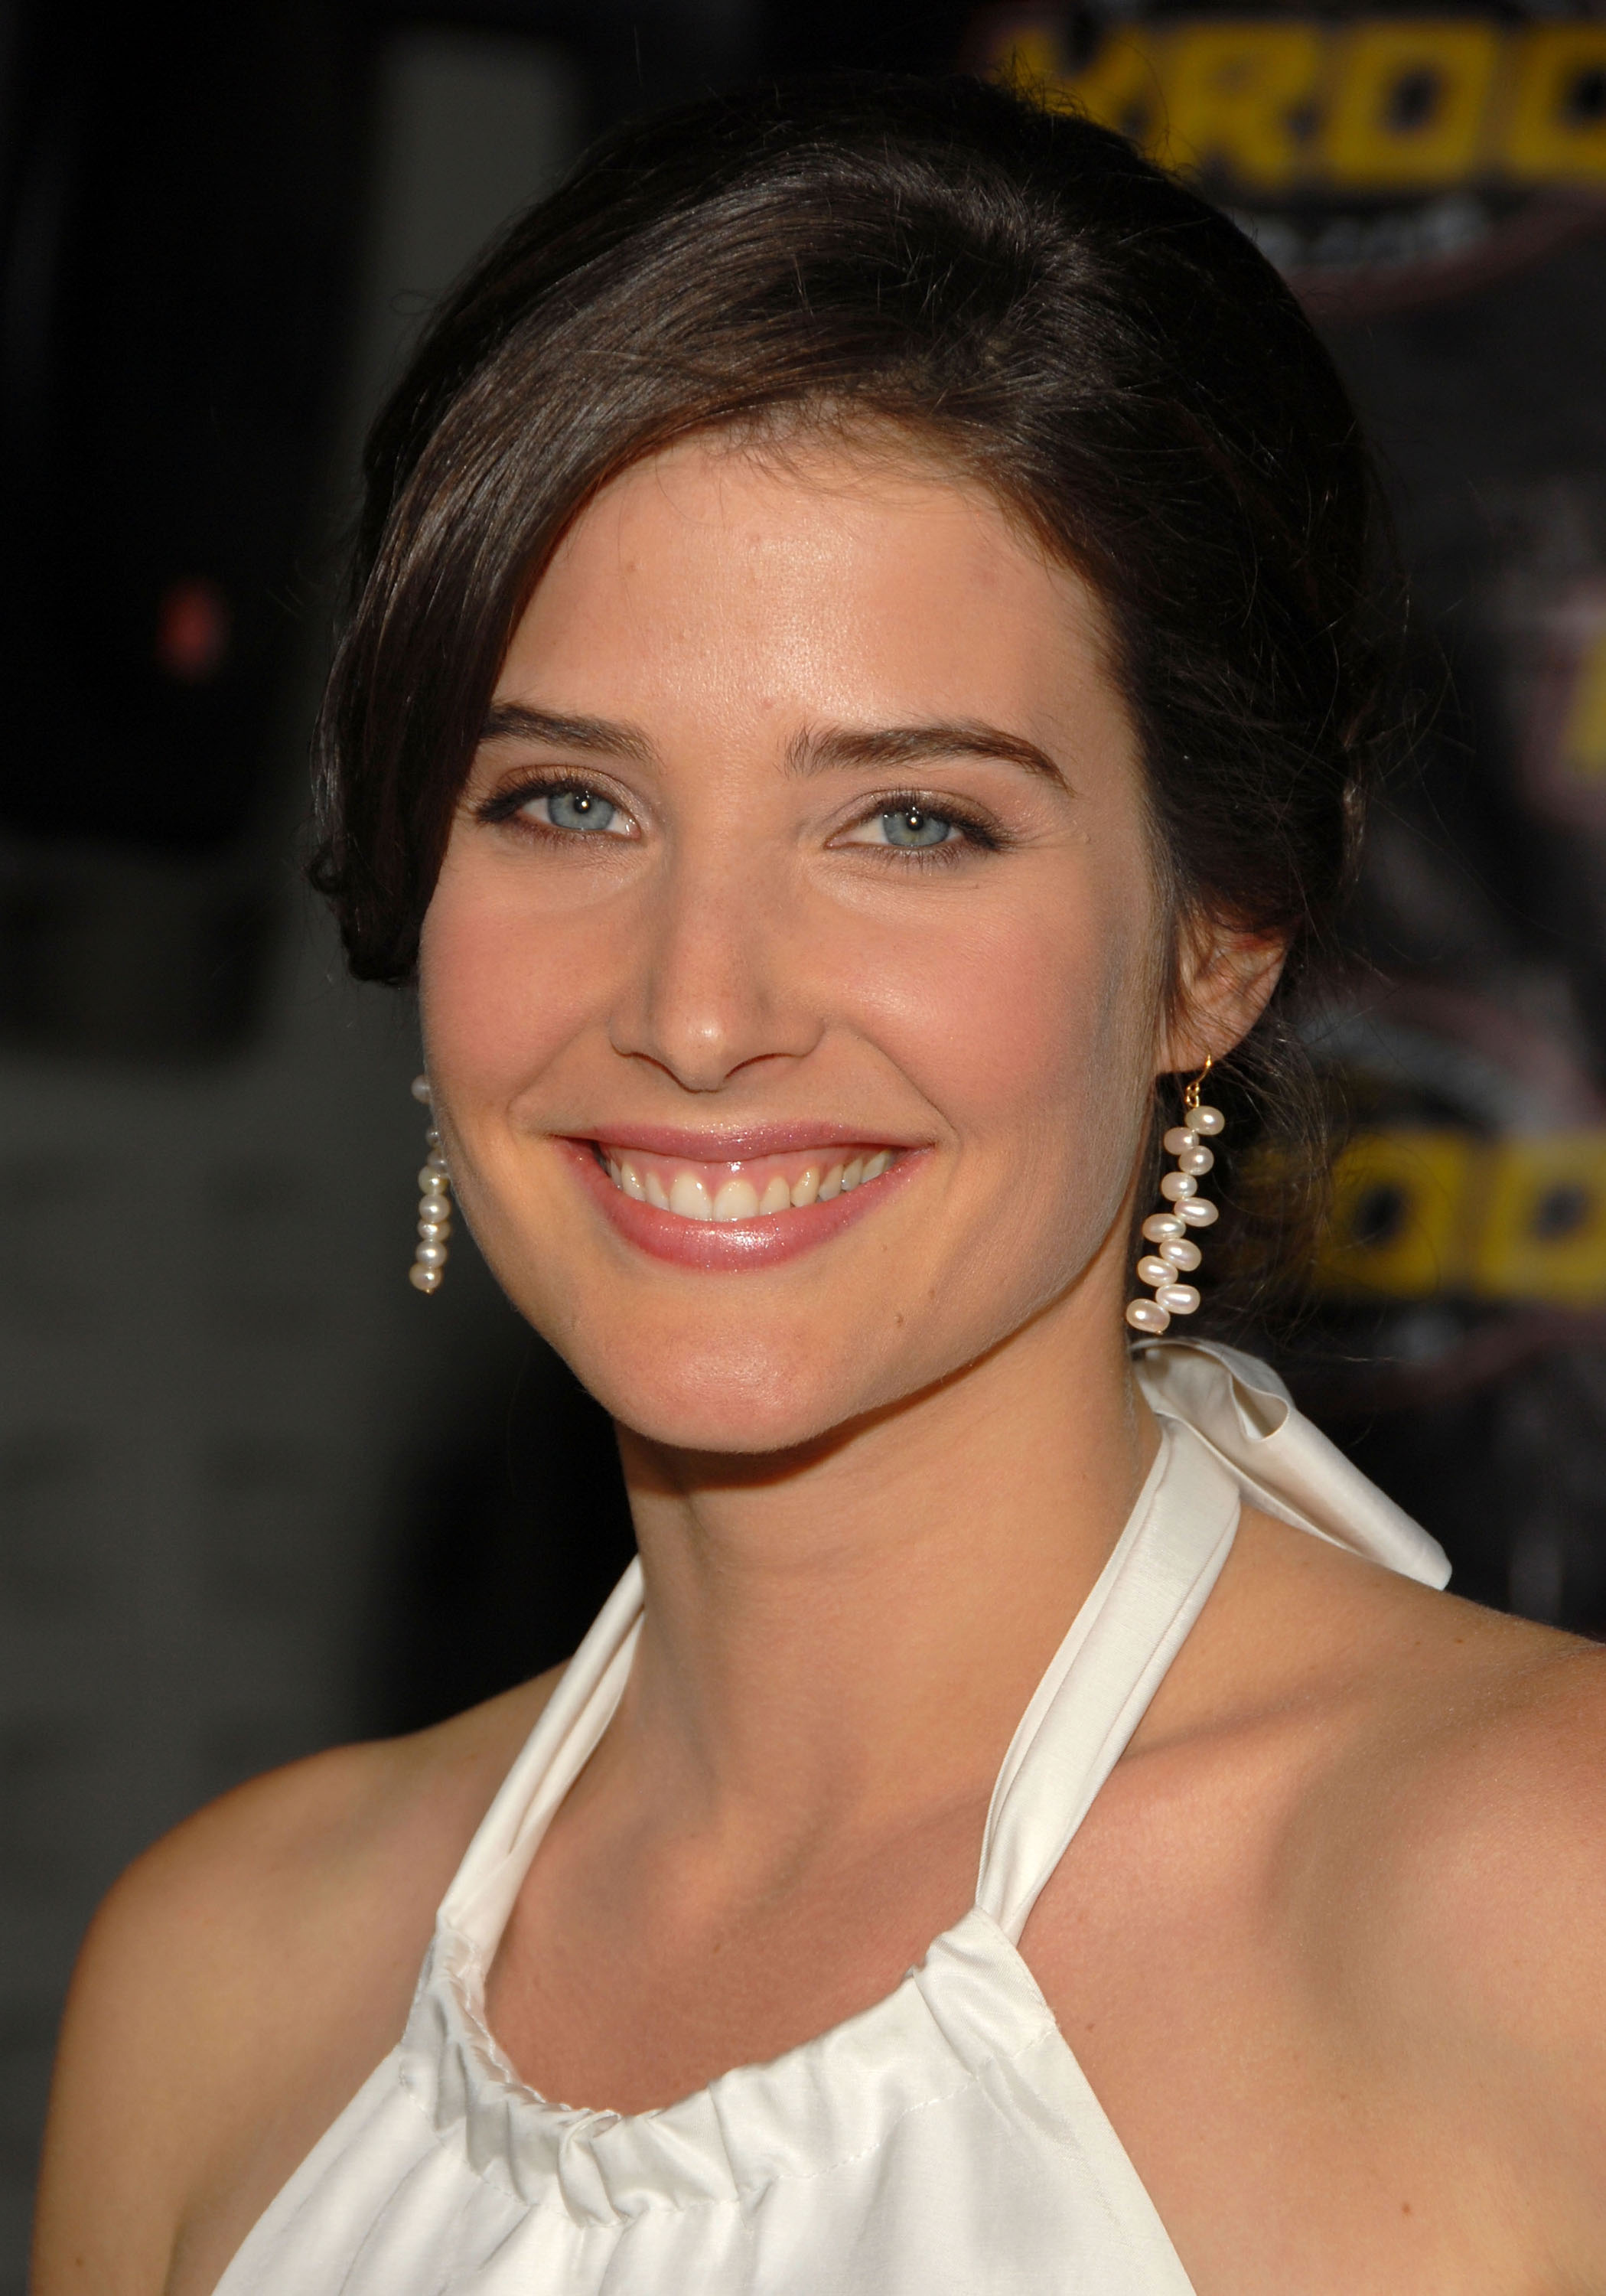 Cobie Smulders nudes (27 photo), images Erotica, Snapchat, see through 2020